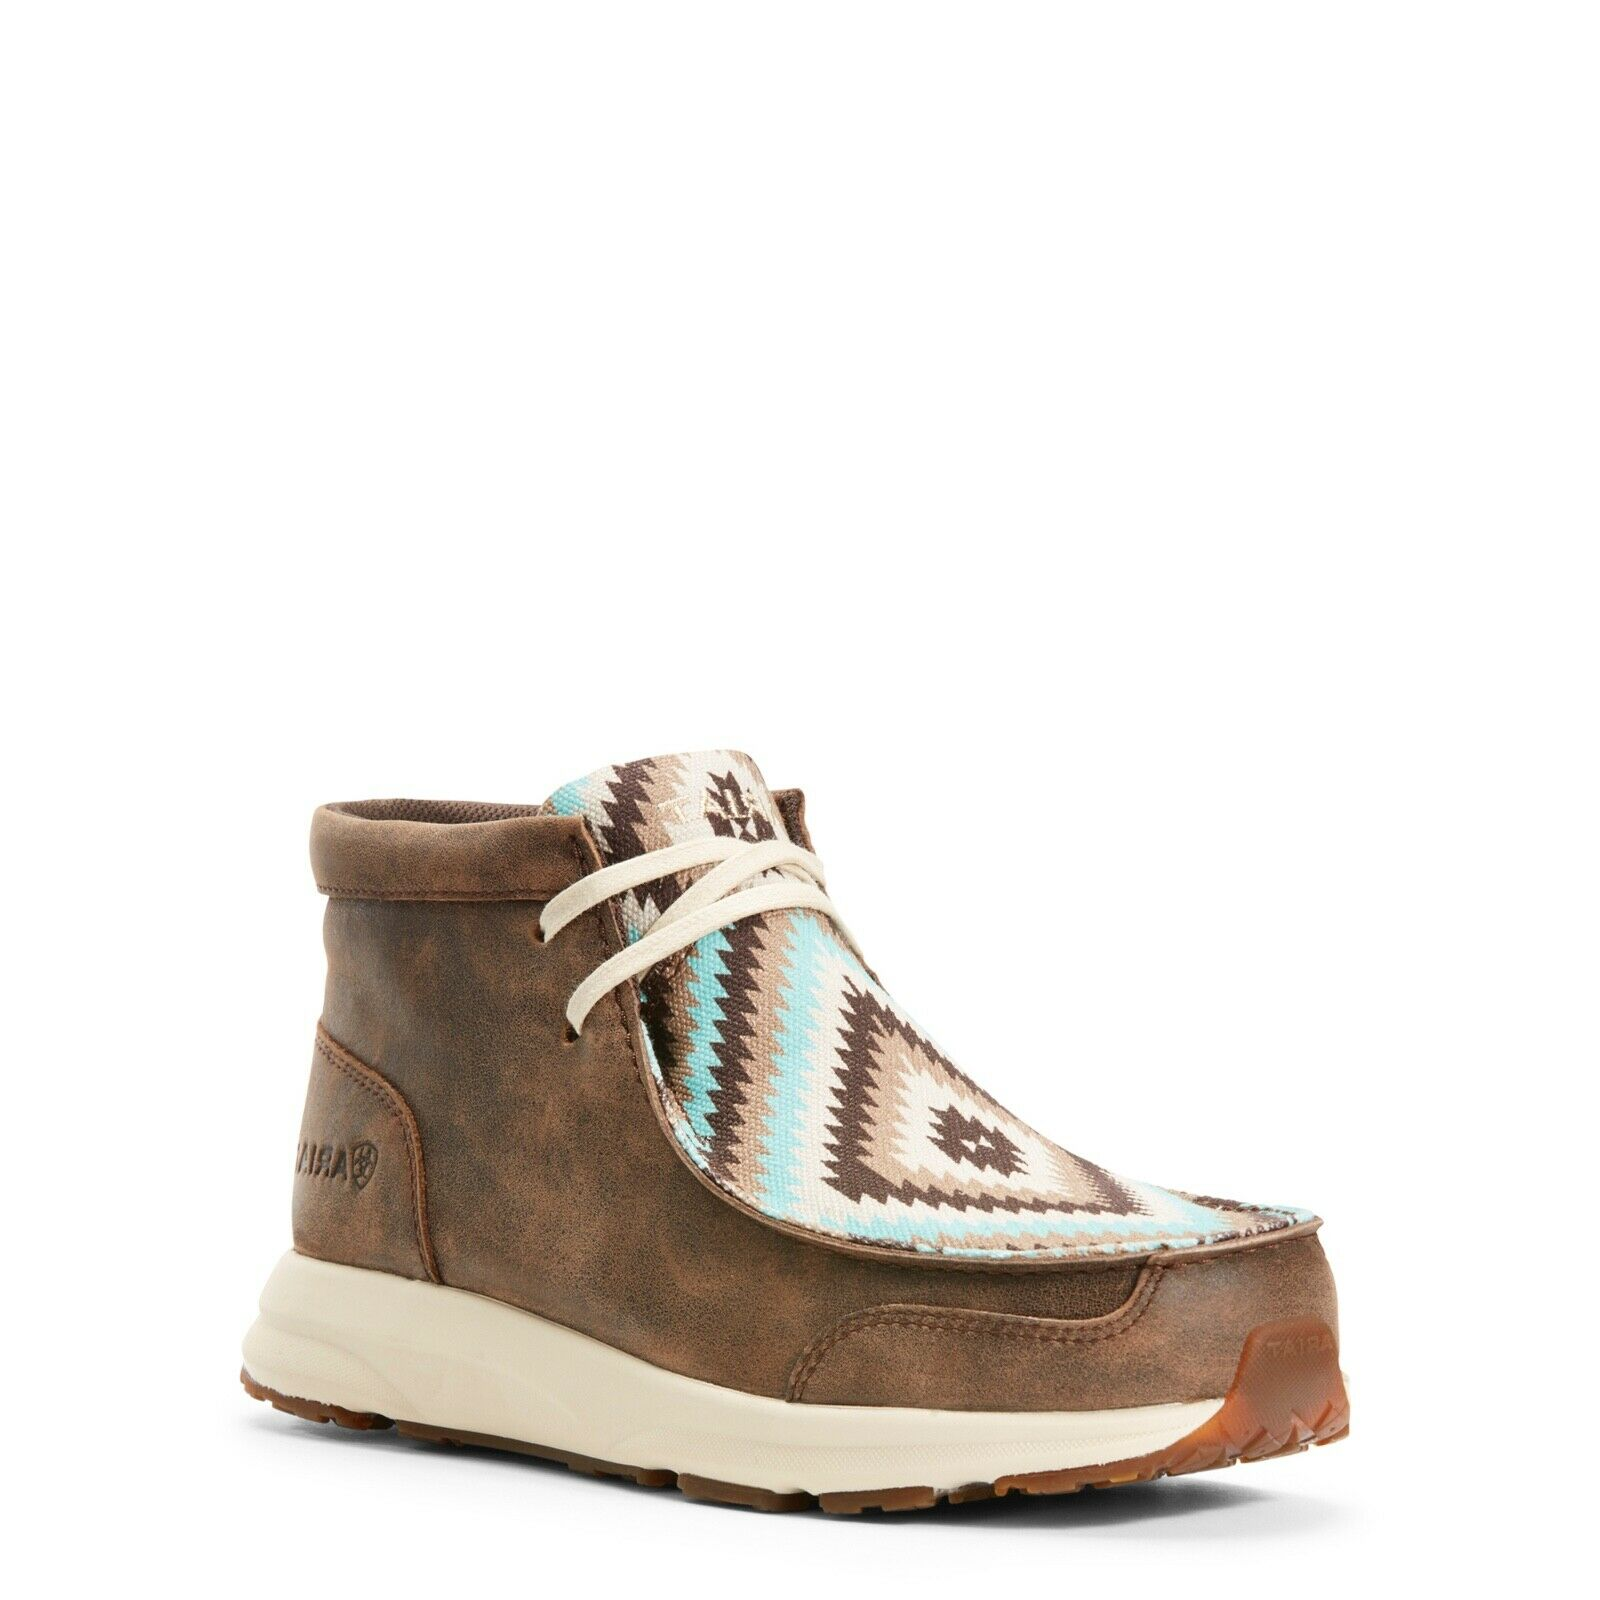 Ariat® Ladies Spitfire Marroneee Turquoise Tribal Lace-up scarpe 10027347